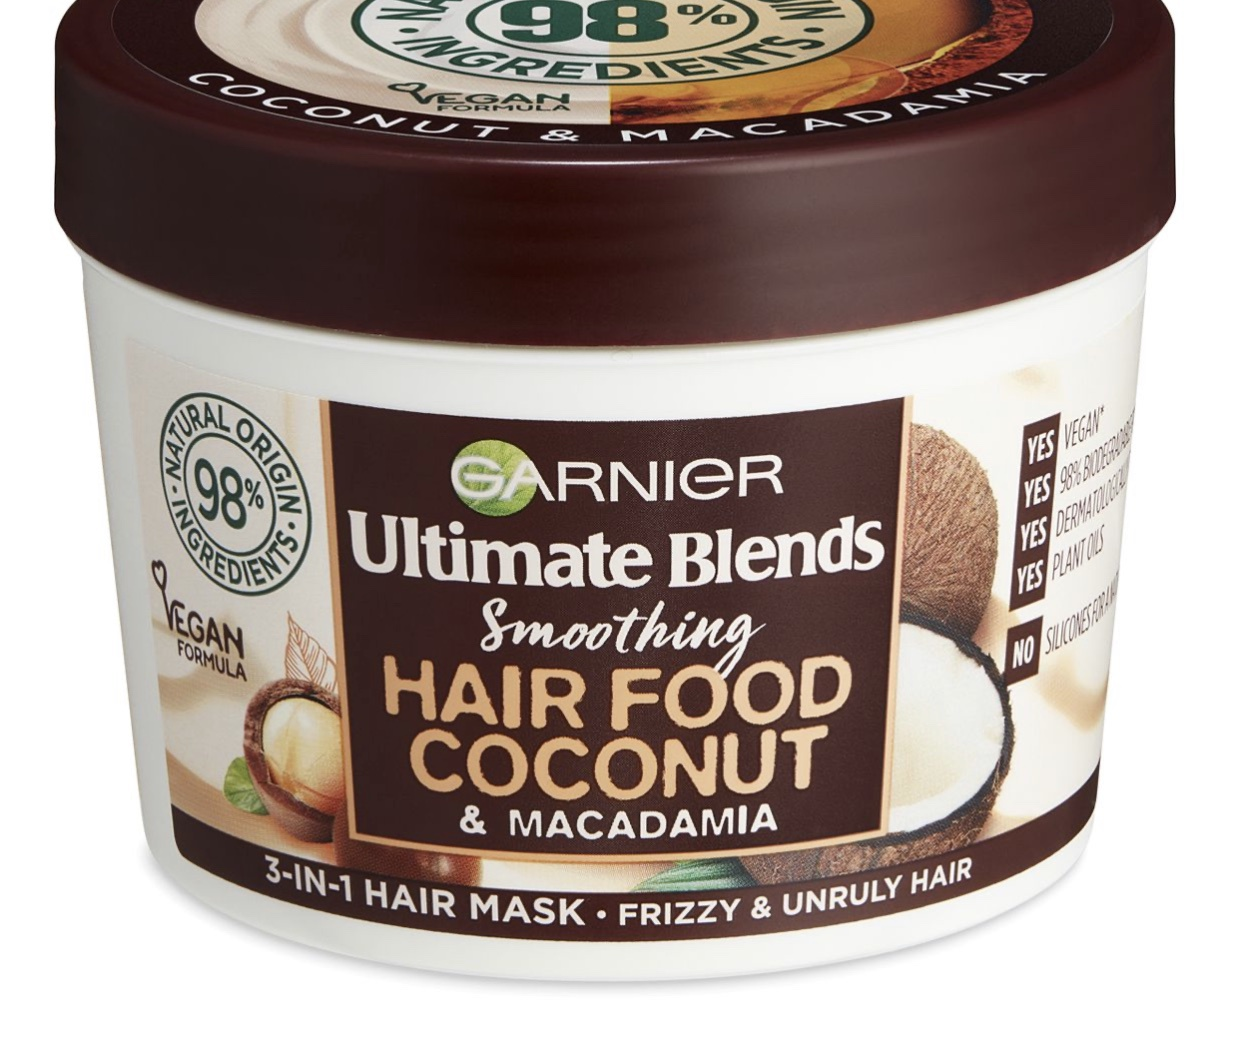 Garnier ultimate blends Hair Food Coconut & Macadamia Hair Mask